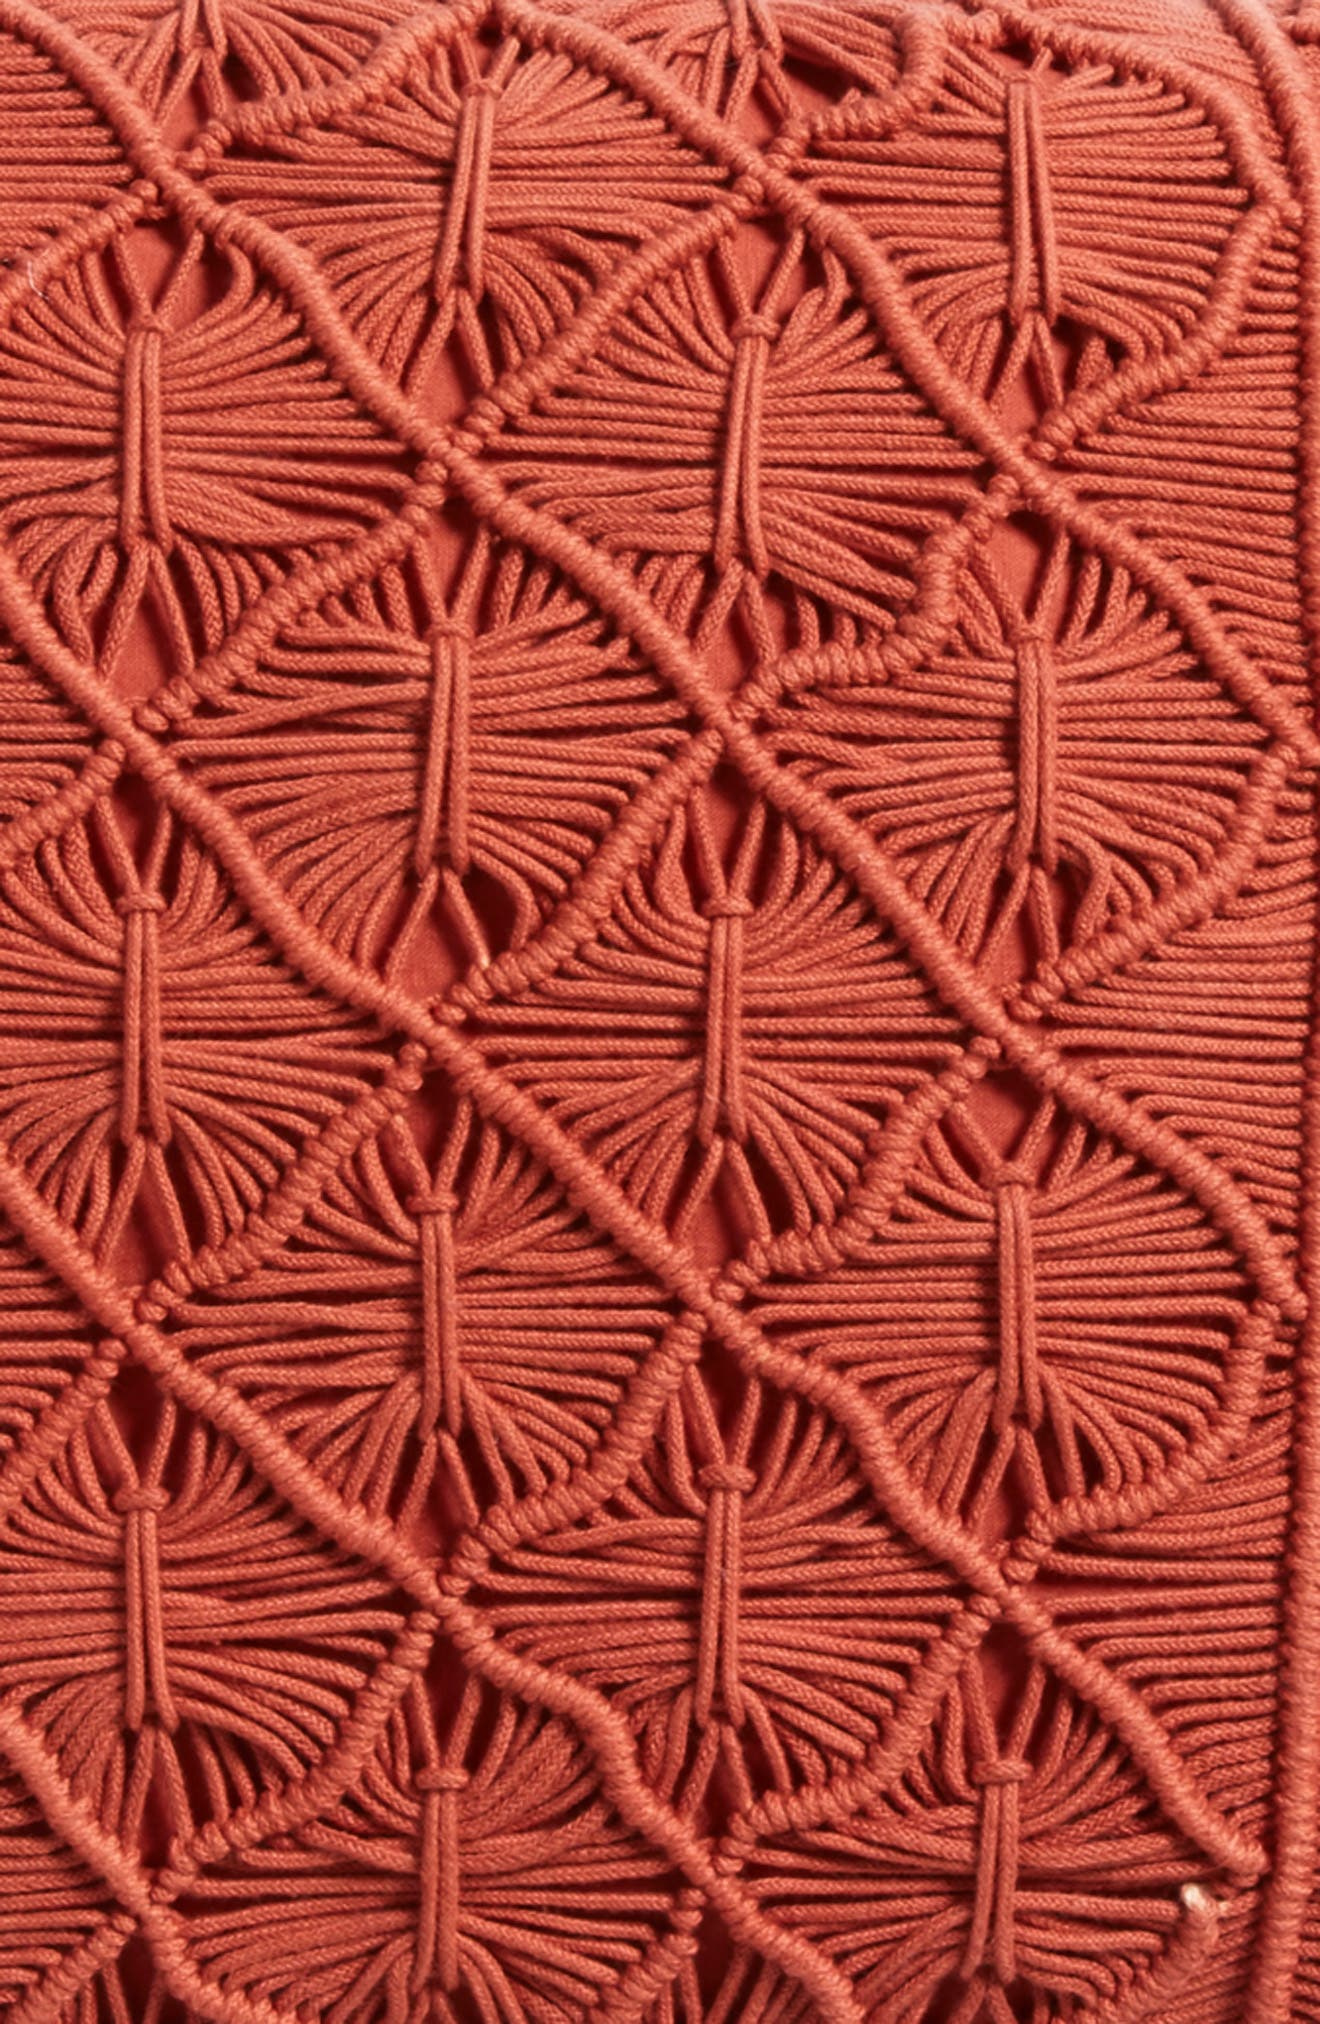 Macramé Accent Pillow,                             Alternate thumbnail 3, color,                             220